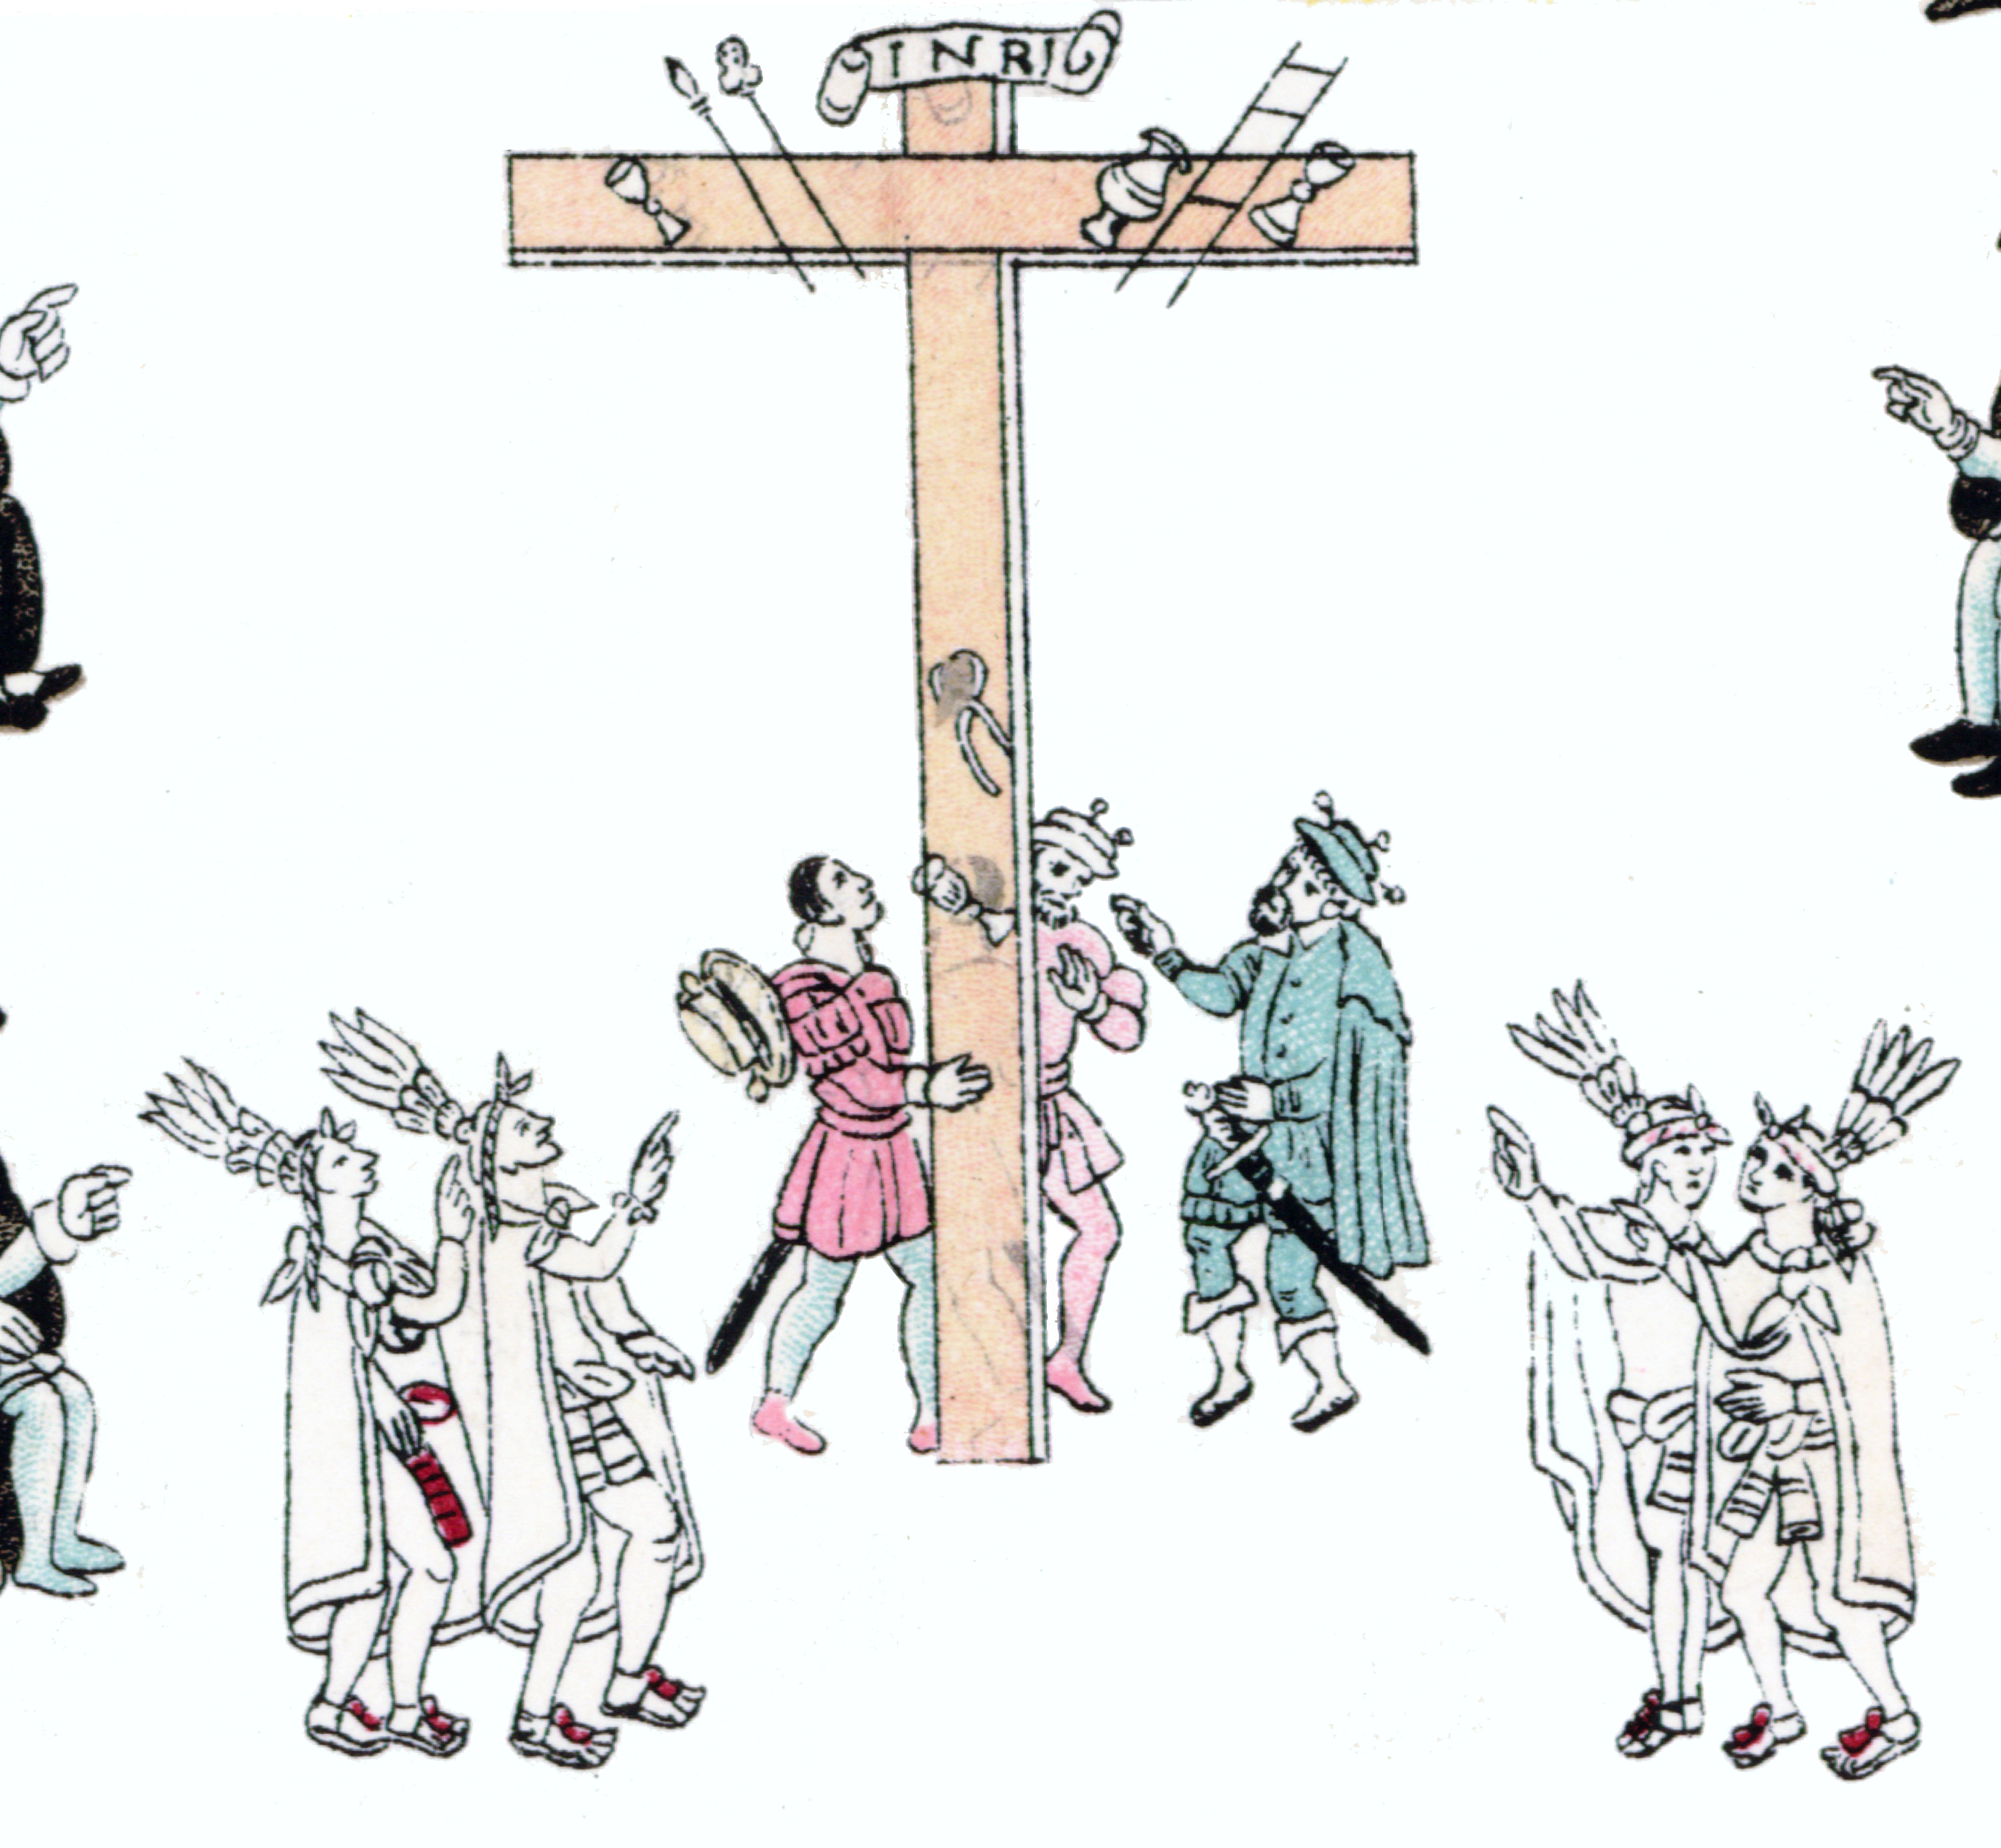 FIGURE 15. Detail of the erection of the cross in the main scene of the Lienzo de Tlaxcala.